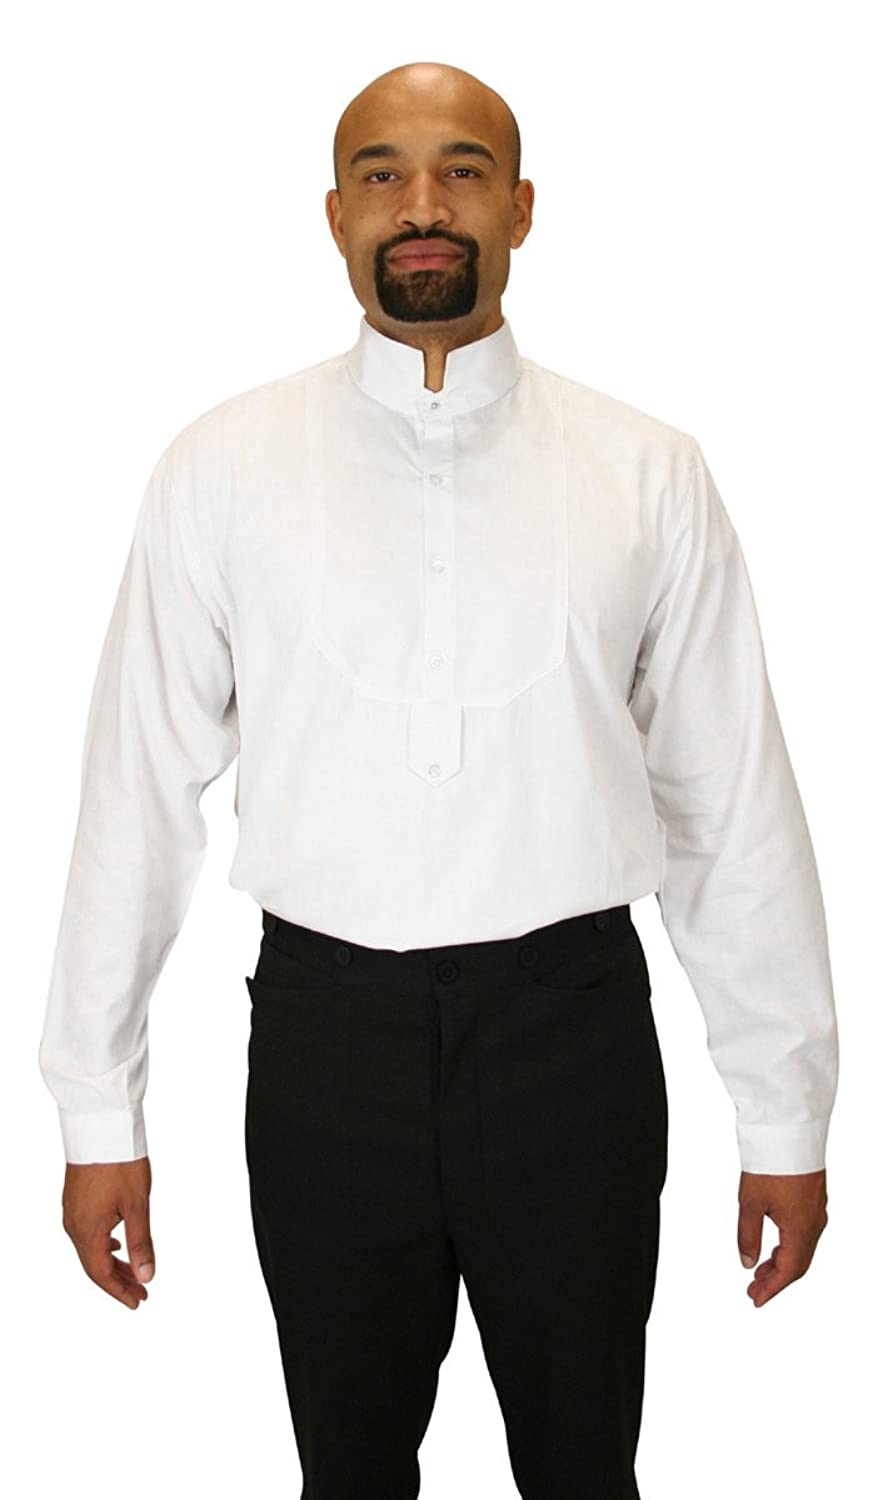 Steampunk Men's Shirts Mens Victorian Collar Dress Shirt $59.95 AT vintagedancer.com